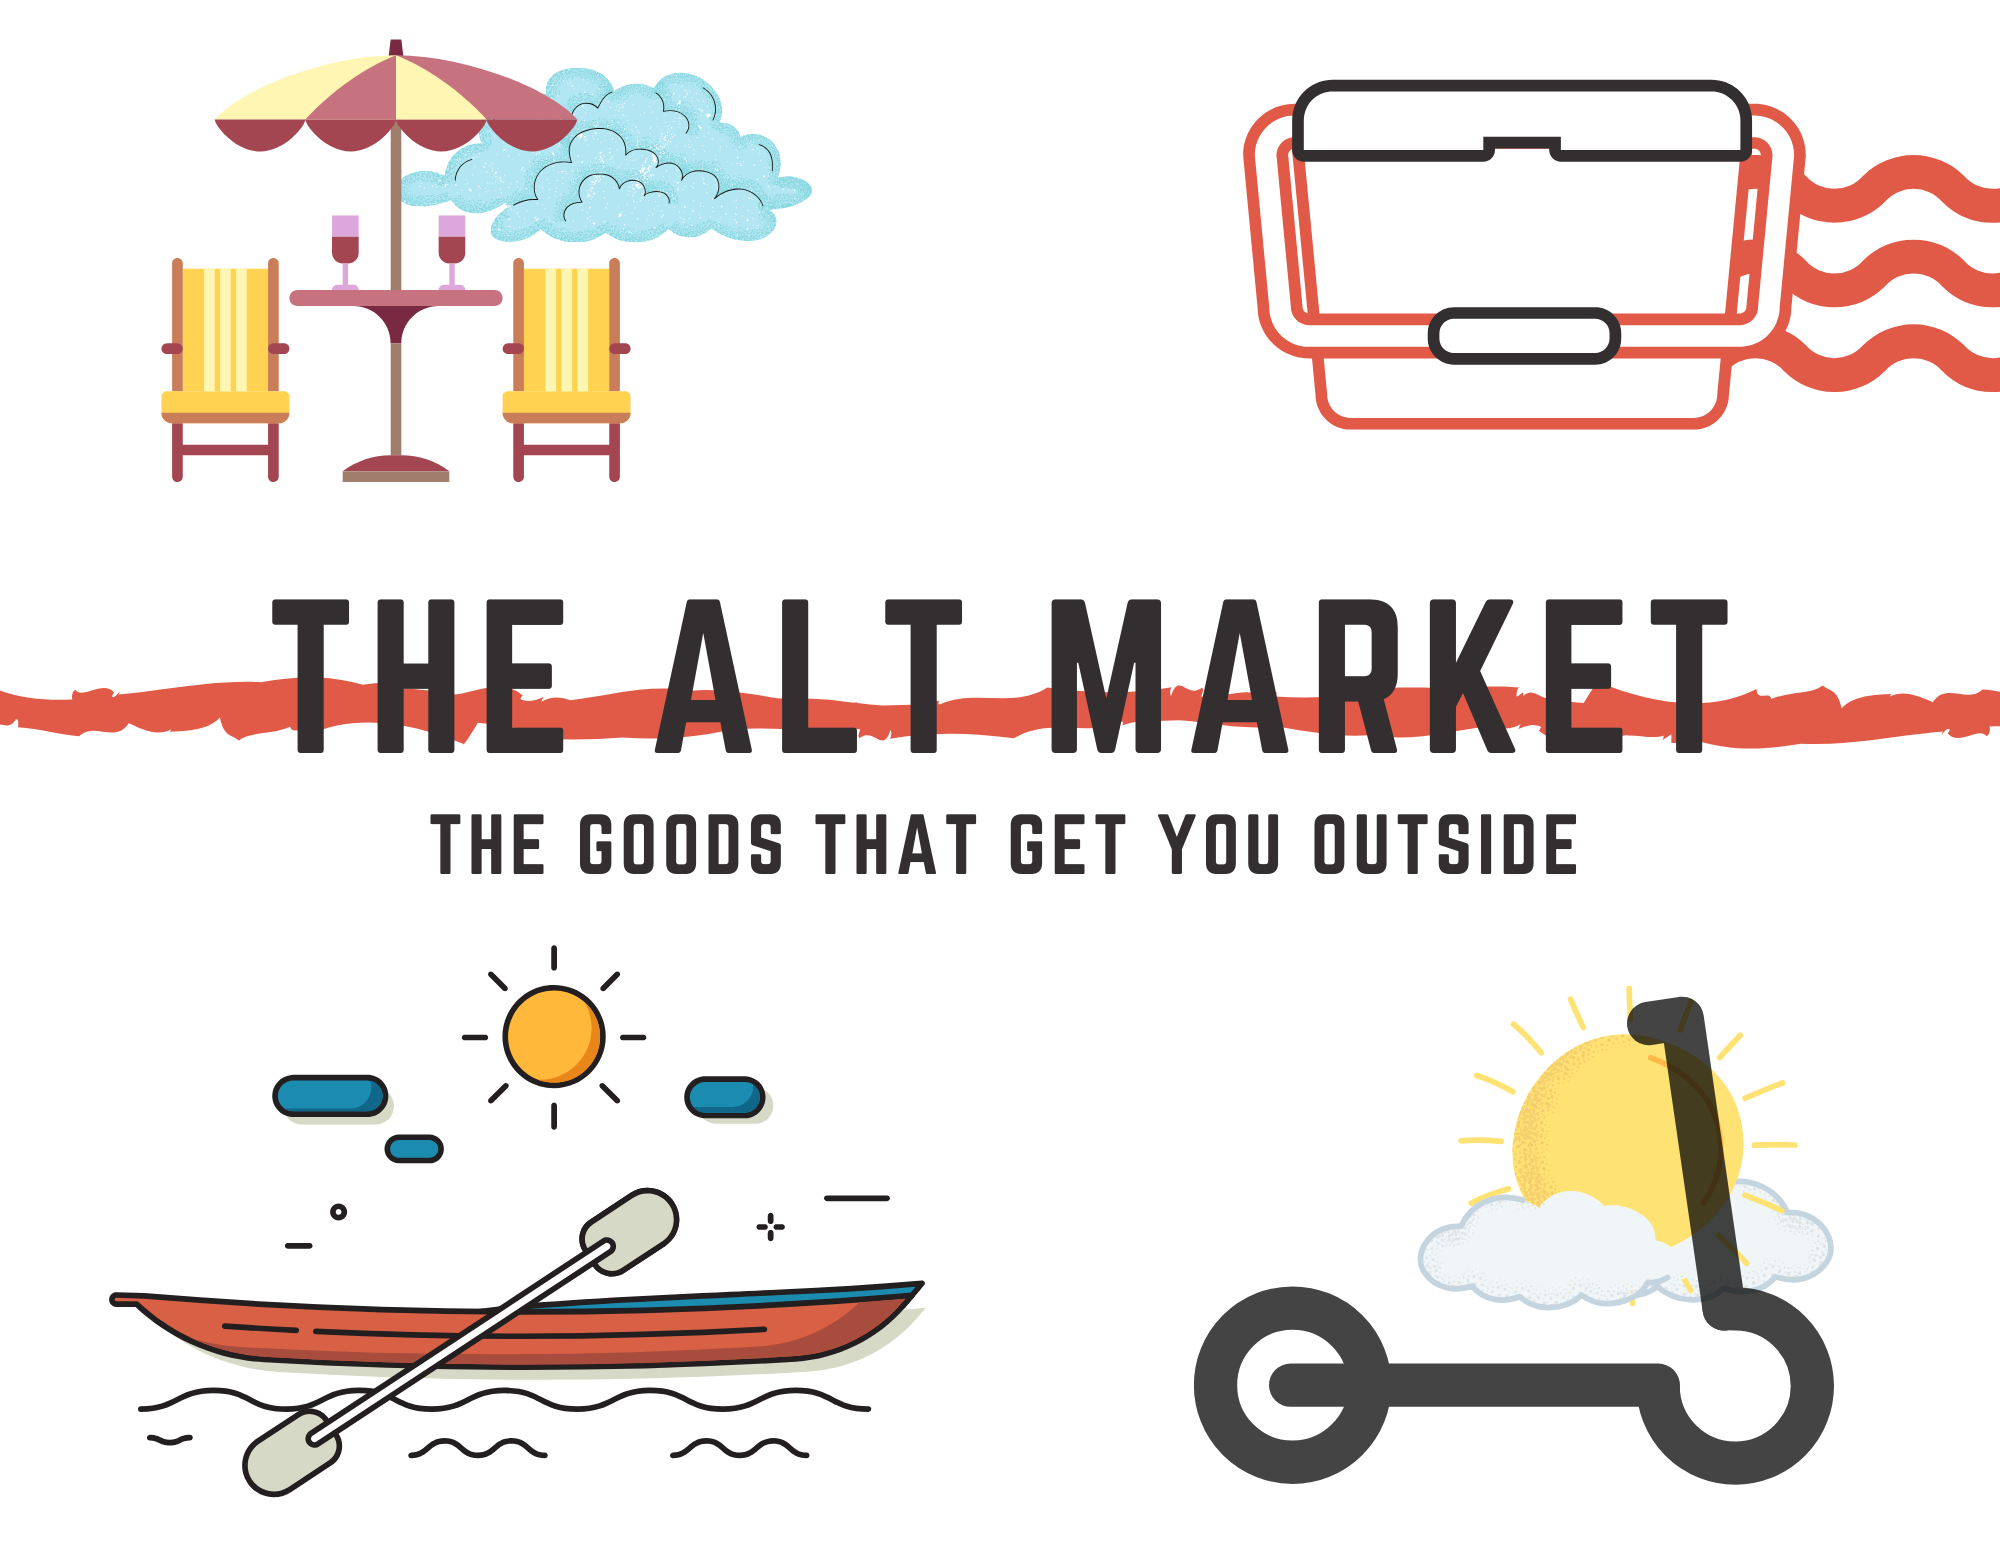 The ALT-Market